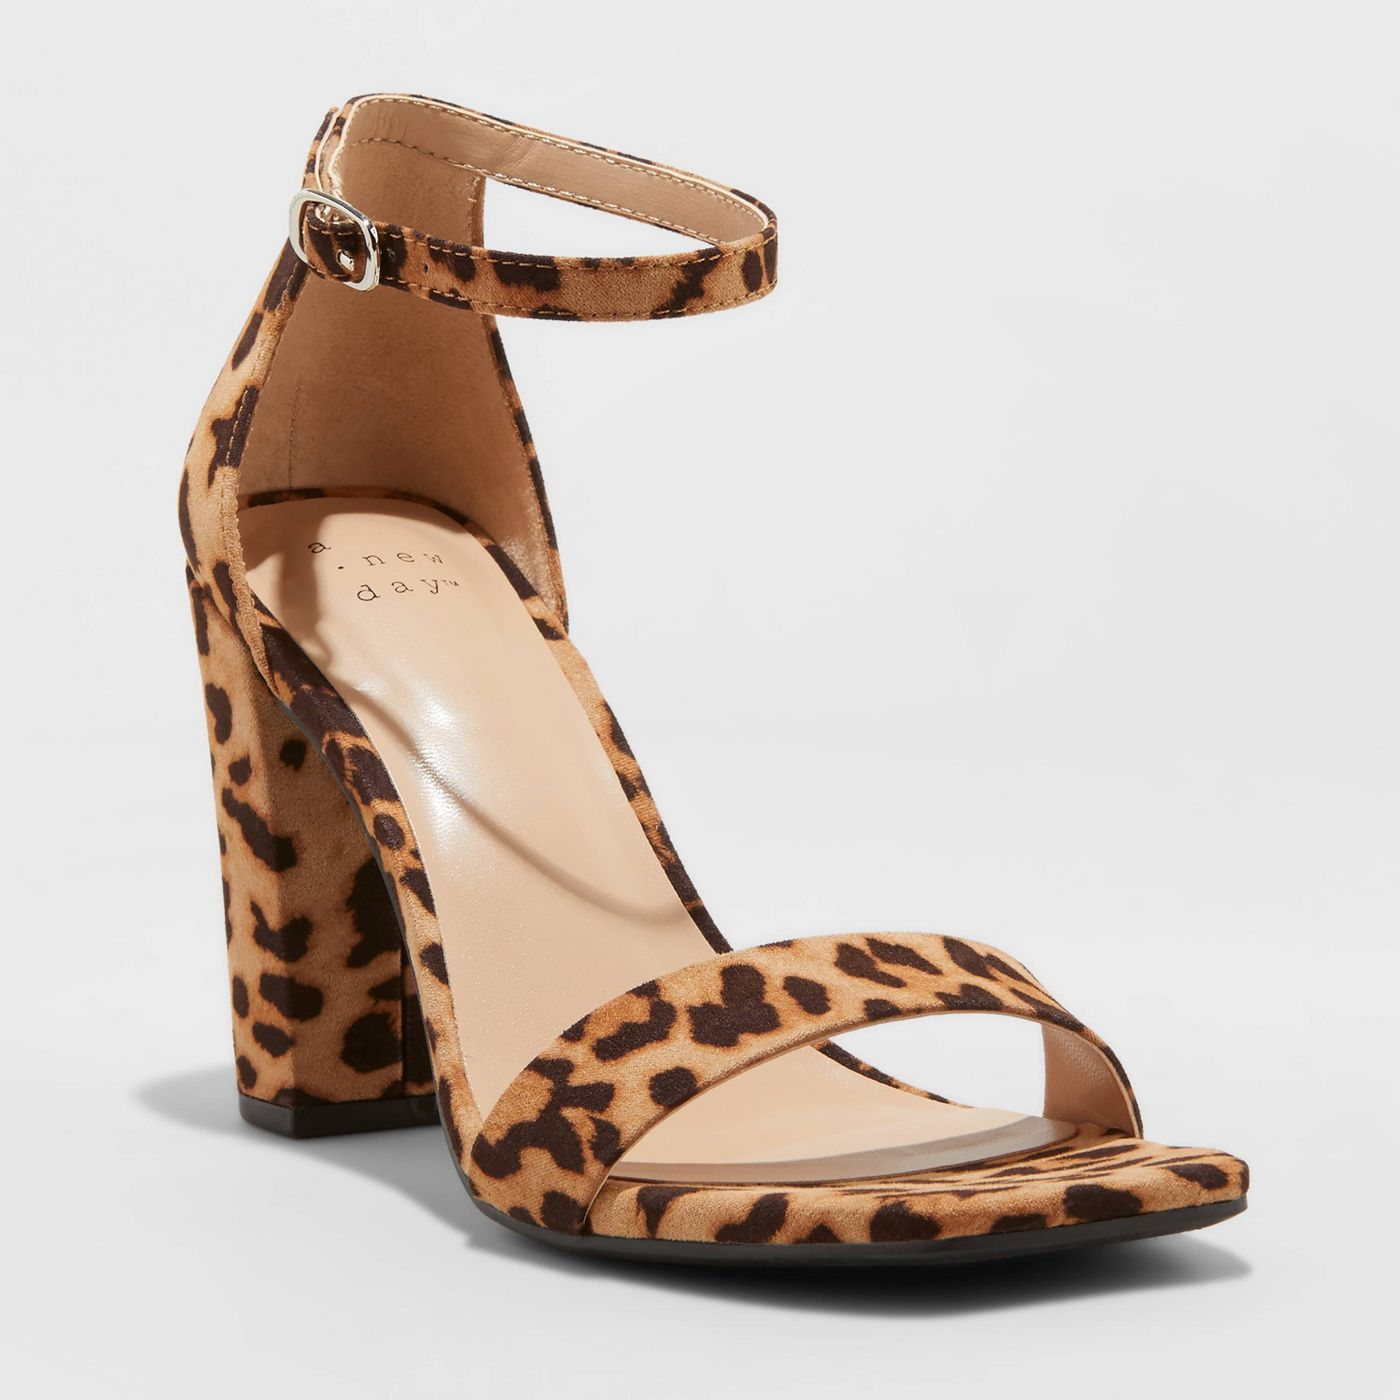 Women's Ema High Block Heeled Square Toe Pumps - A New Day™ - image 1 of 7